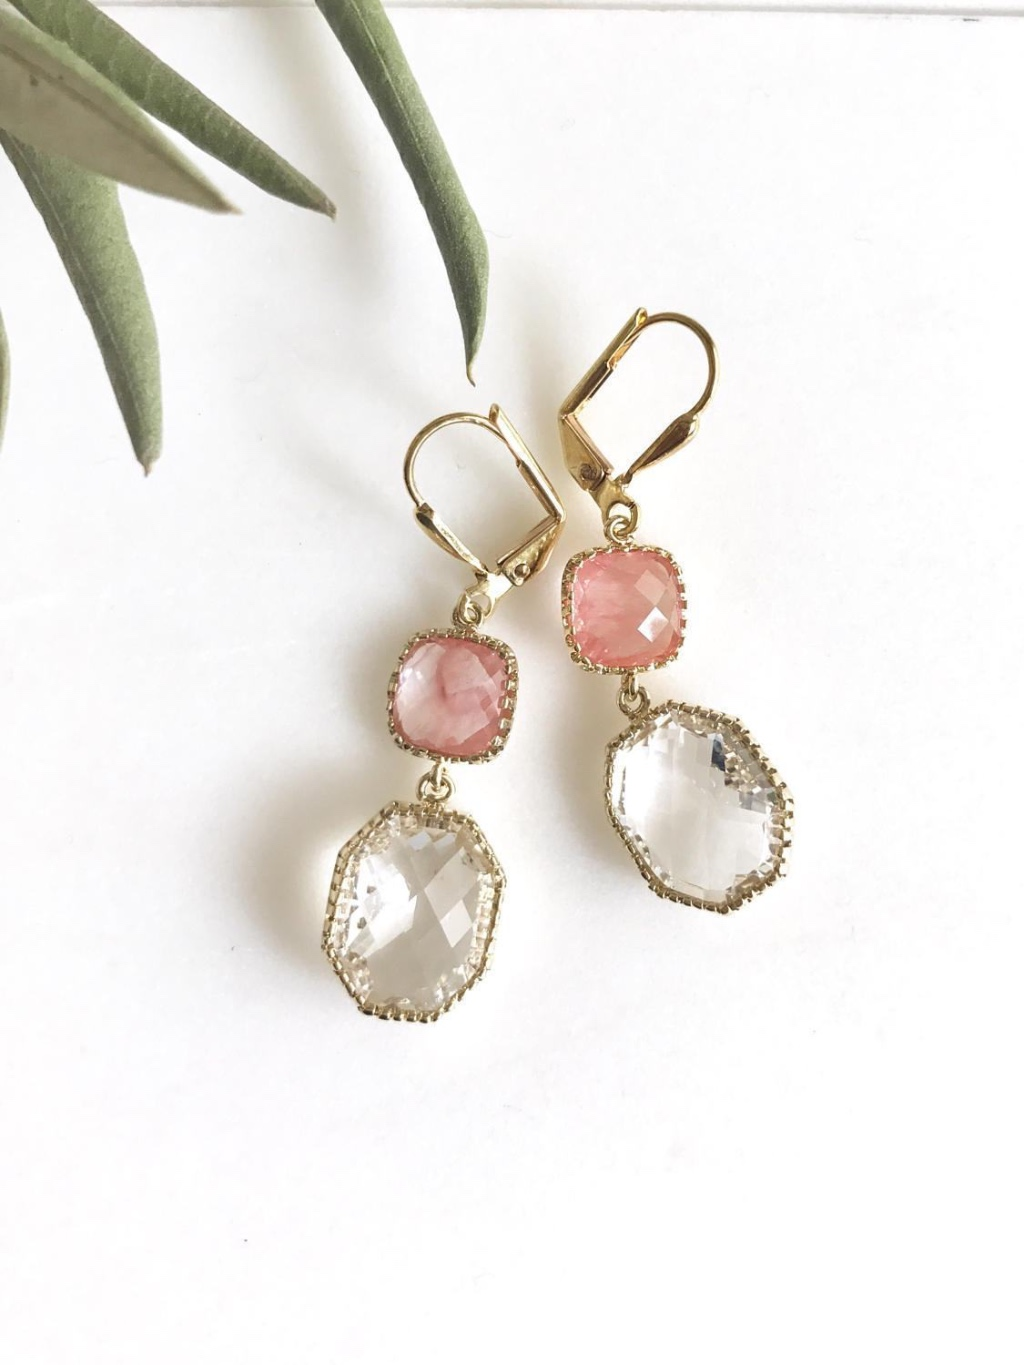 Pink and gold come together beautifully in these elegant and stunning earrings. Alive and gorgeous, these earrings will add a beautiful